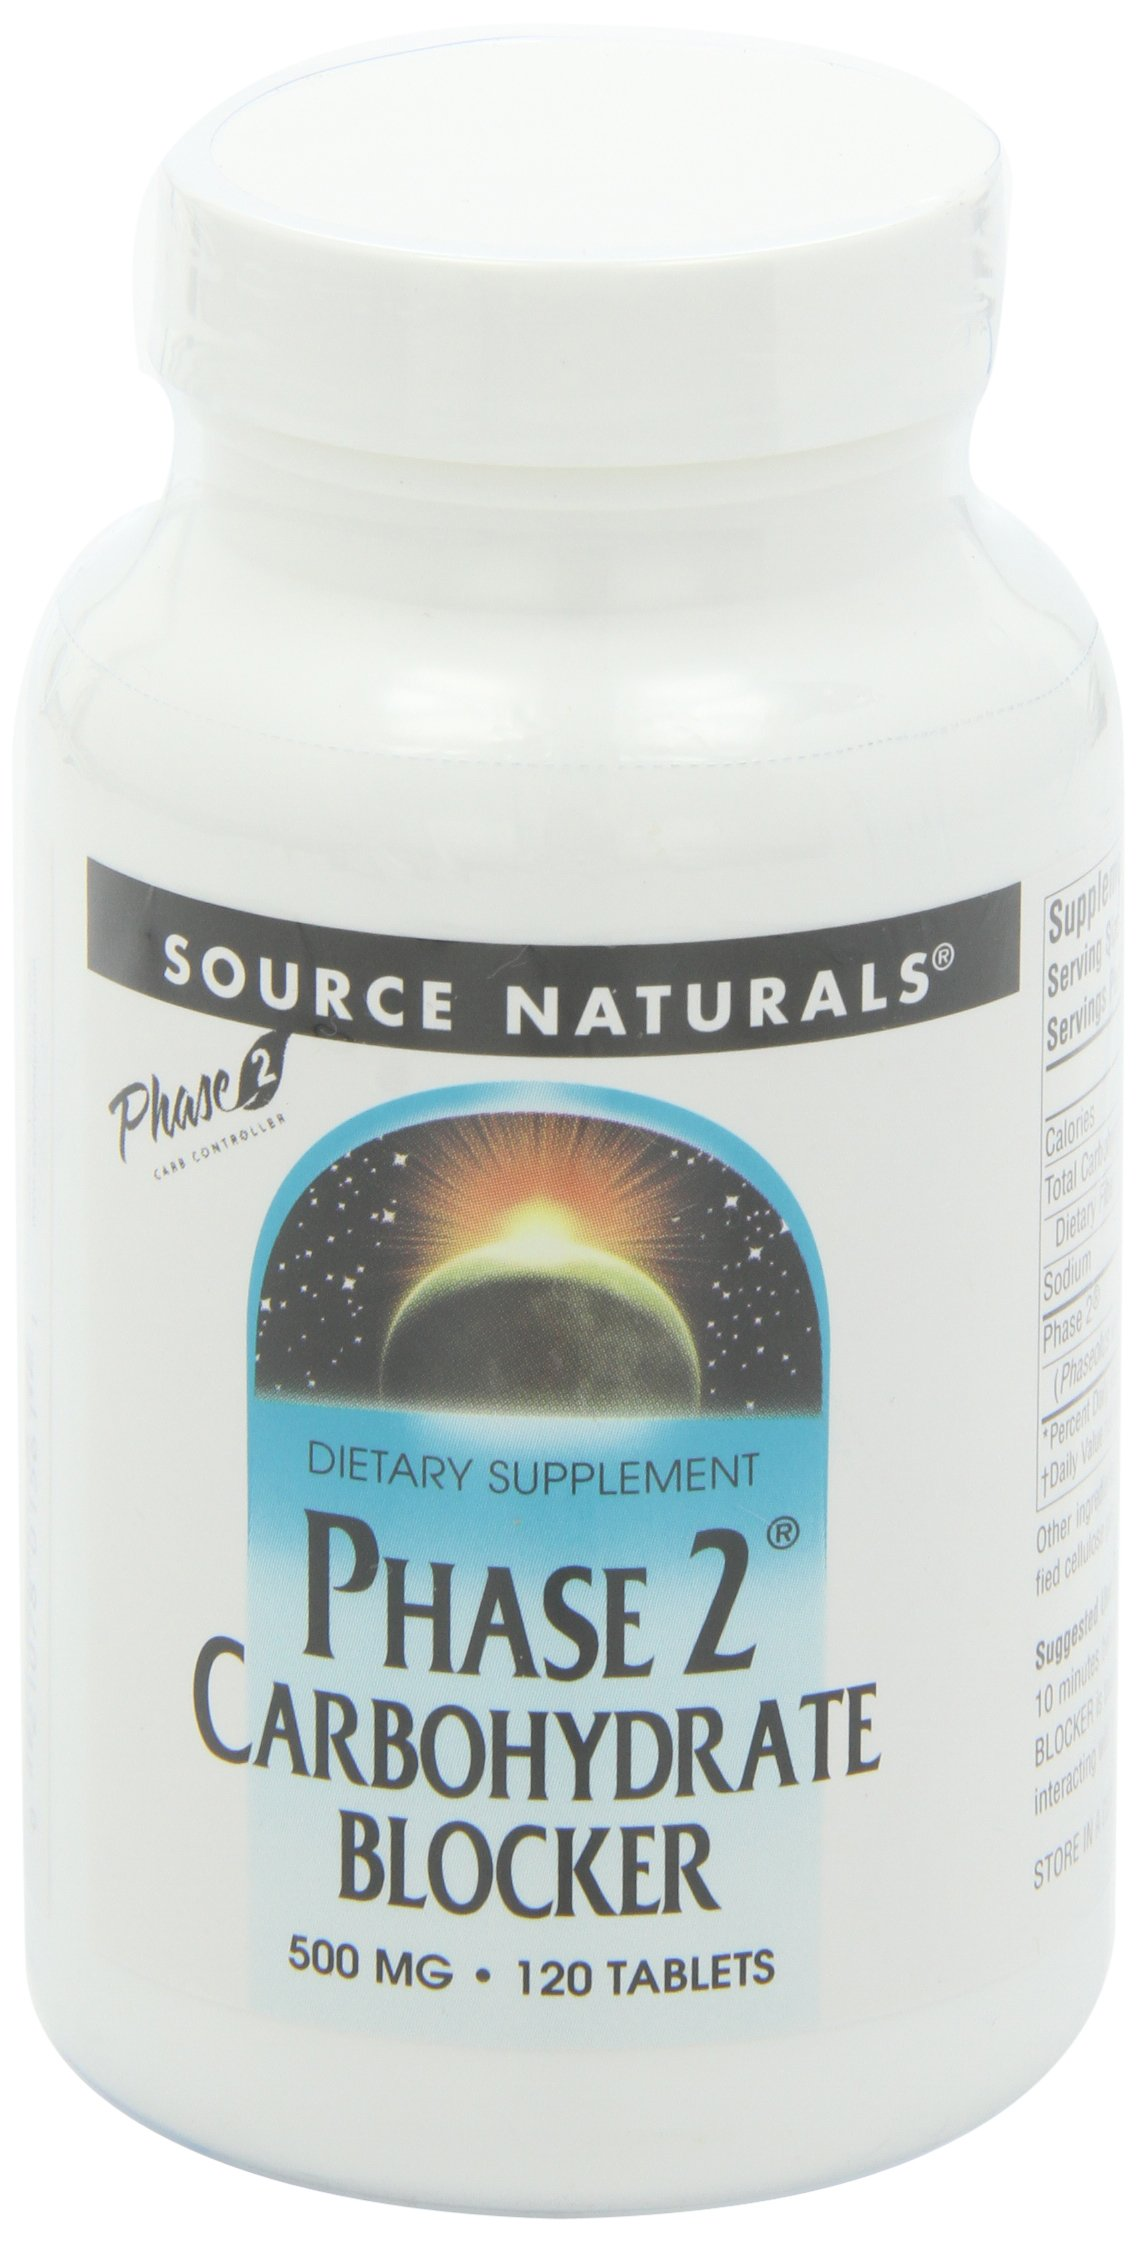 SOURCE NATURALS Phase 2 Carbohydrate Blocker 500 Mg Tablet, 120 Count by Source Naturals